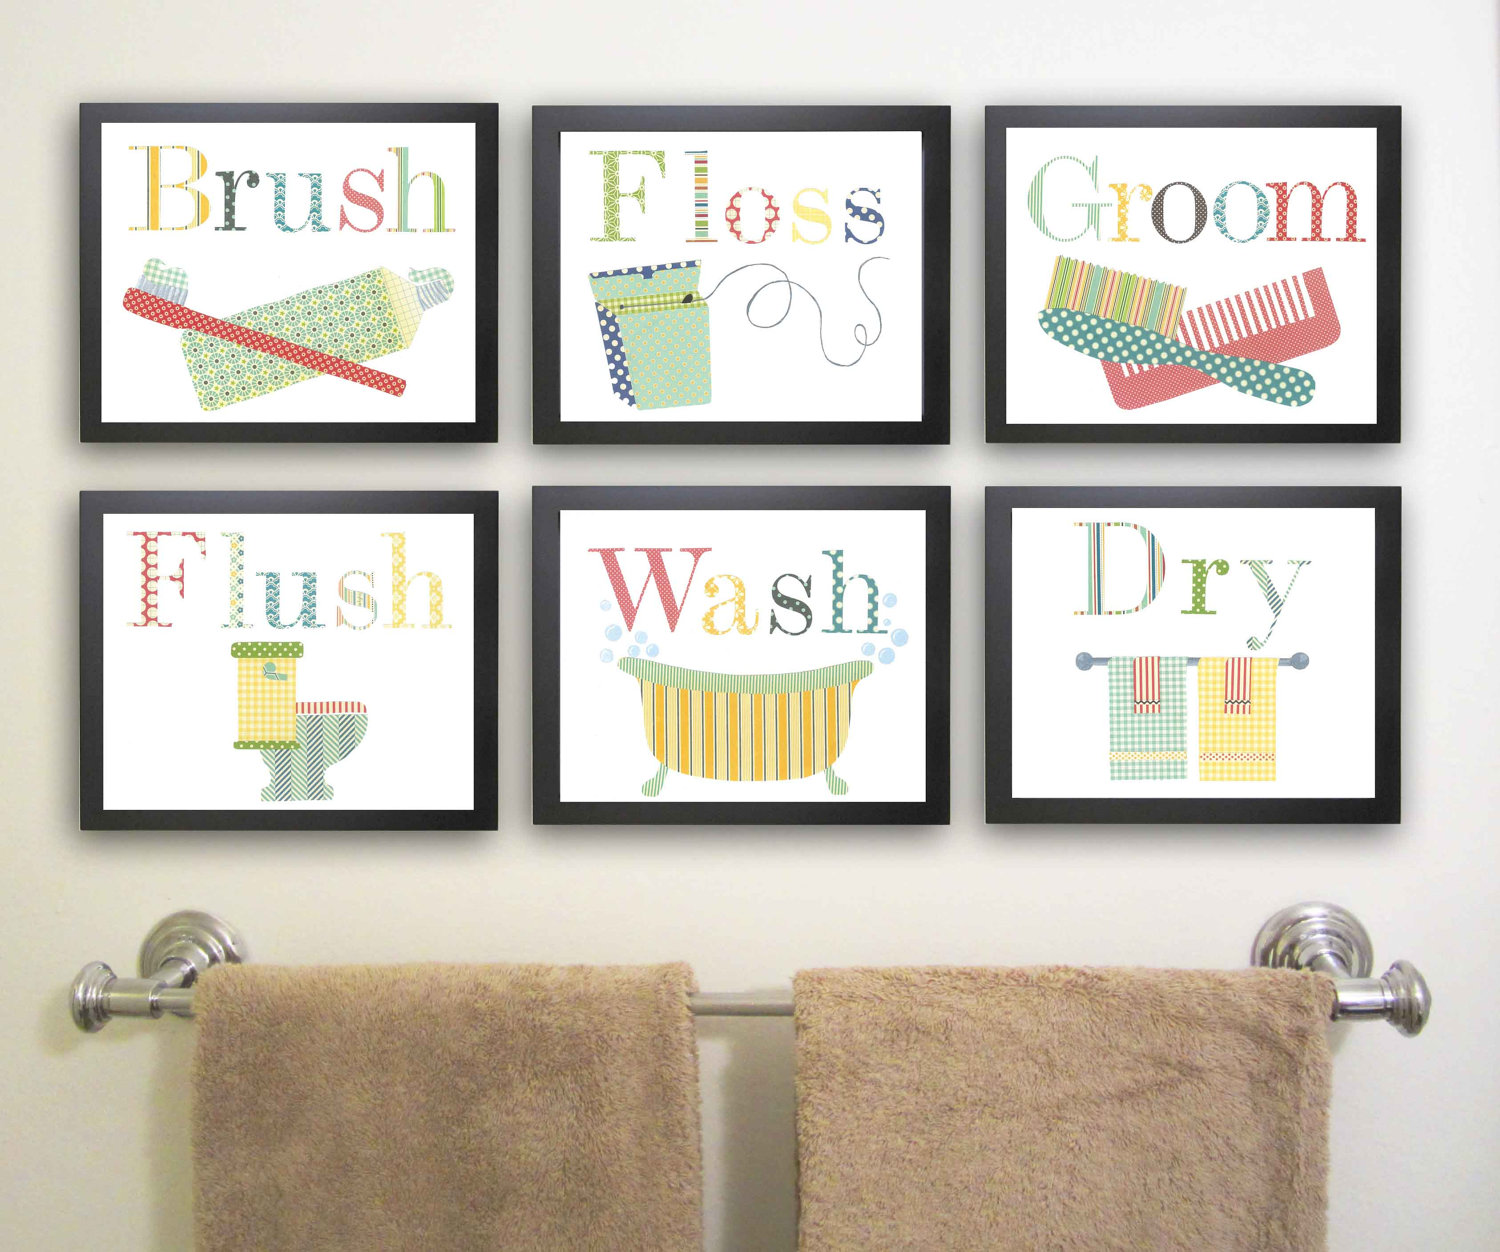 Bathroom wall art decorating tips inoutinterior for Bathroom wall pictures